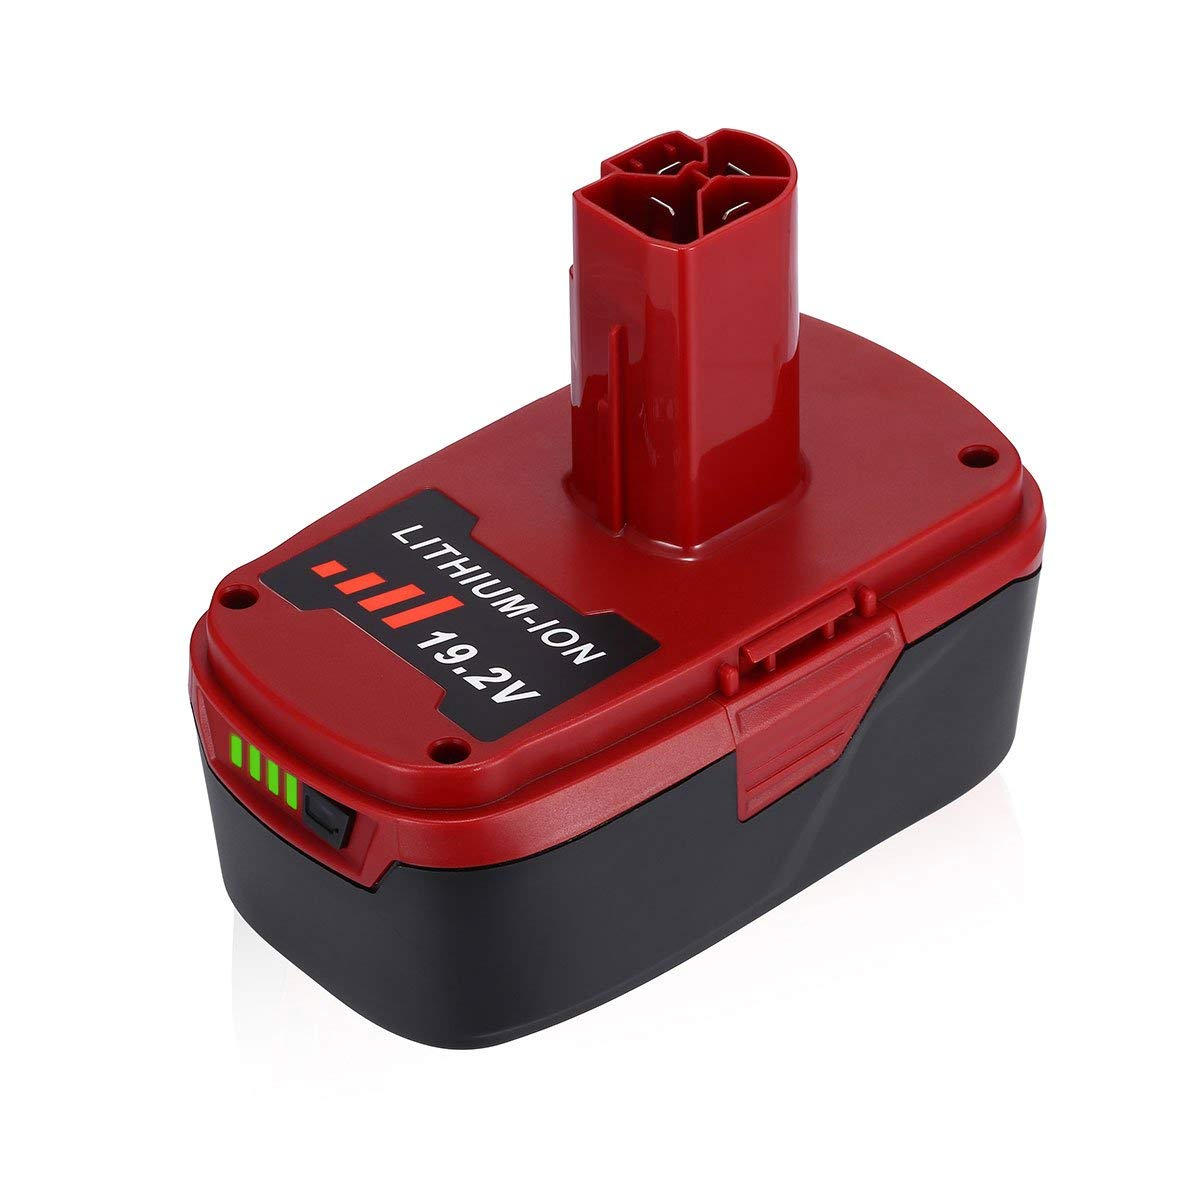 Craftsman 192 Lithium Ion Battery Charger